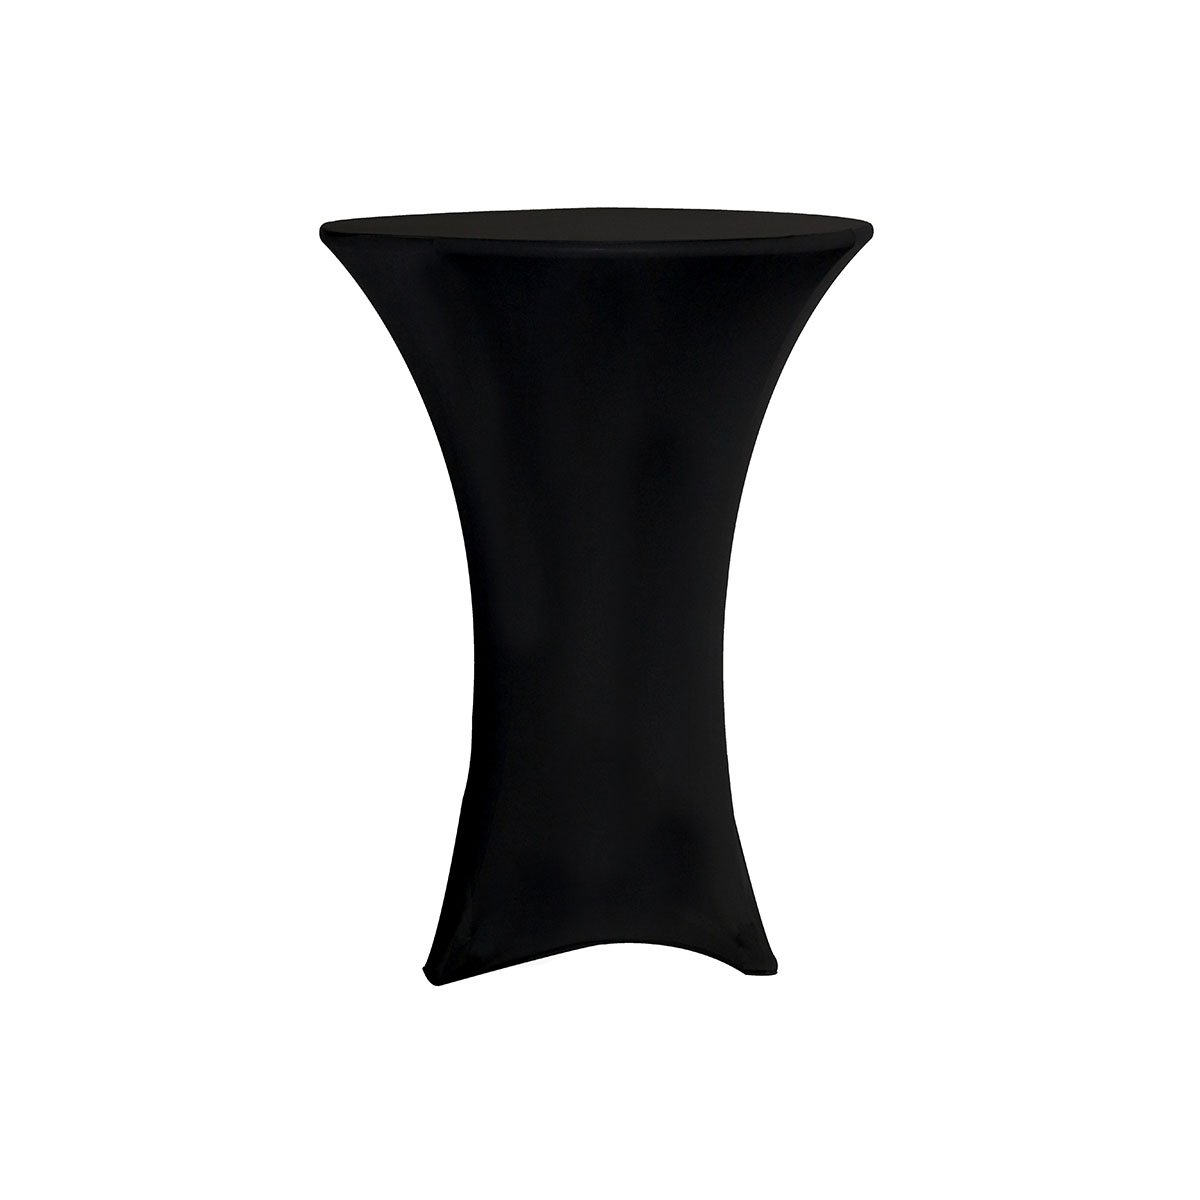 YourChairCovers 30-inch Highboy Cocktail Fitted Spandex Table Cover, Black